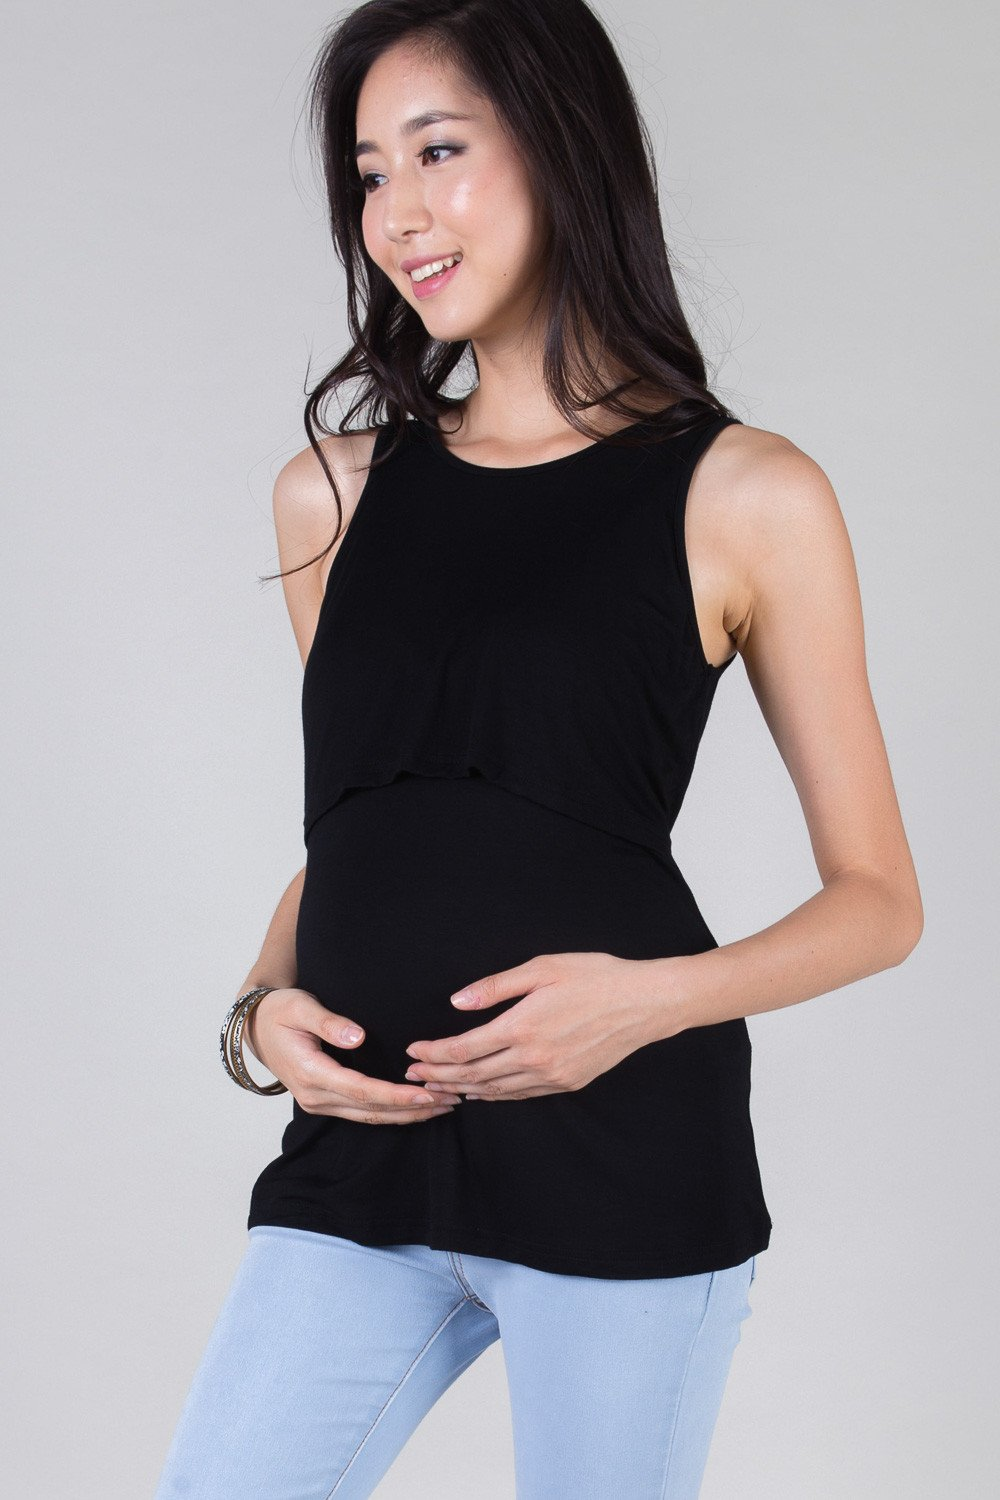 Mothercot Black Basic Nursing Top  by JumpEatCry - Maternity and nursing wear